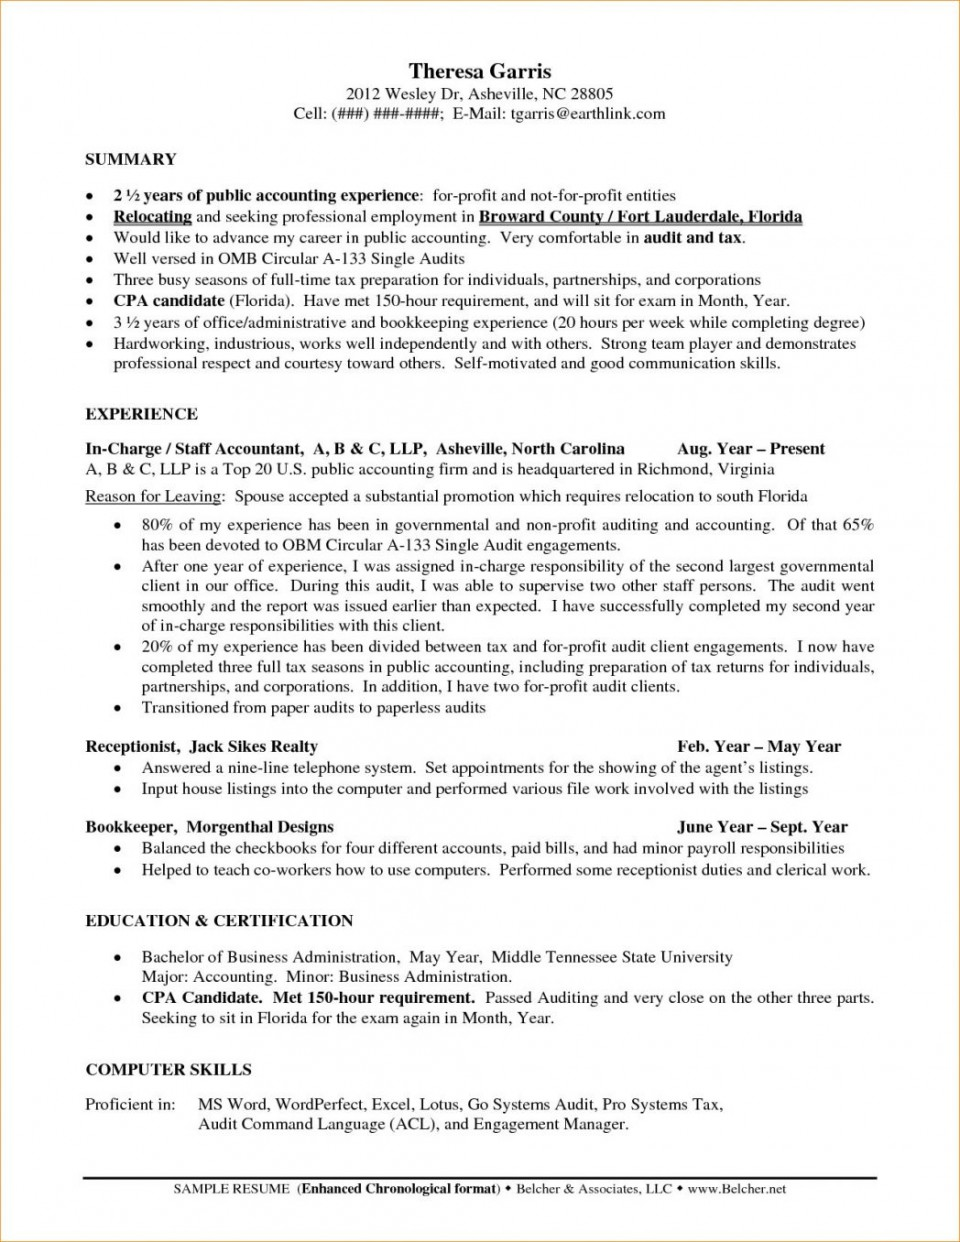 024 Essay Example Best Solutions Of Professional Mba Reflective Help Mri Tech Writing On Teaching Sample Cover Grea Leadership Introduction Using Gibbs Model In Third Person Work Experience Beautiful Examples English Pdf For Middle School Class 960